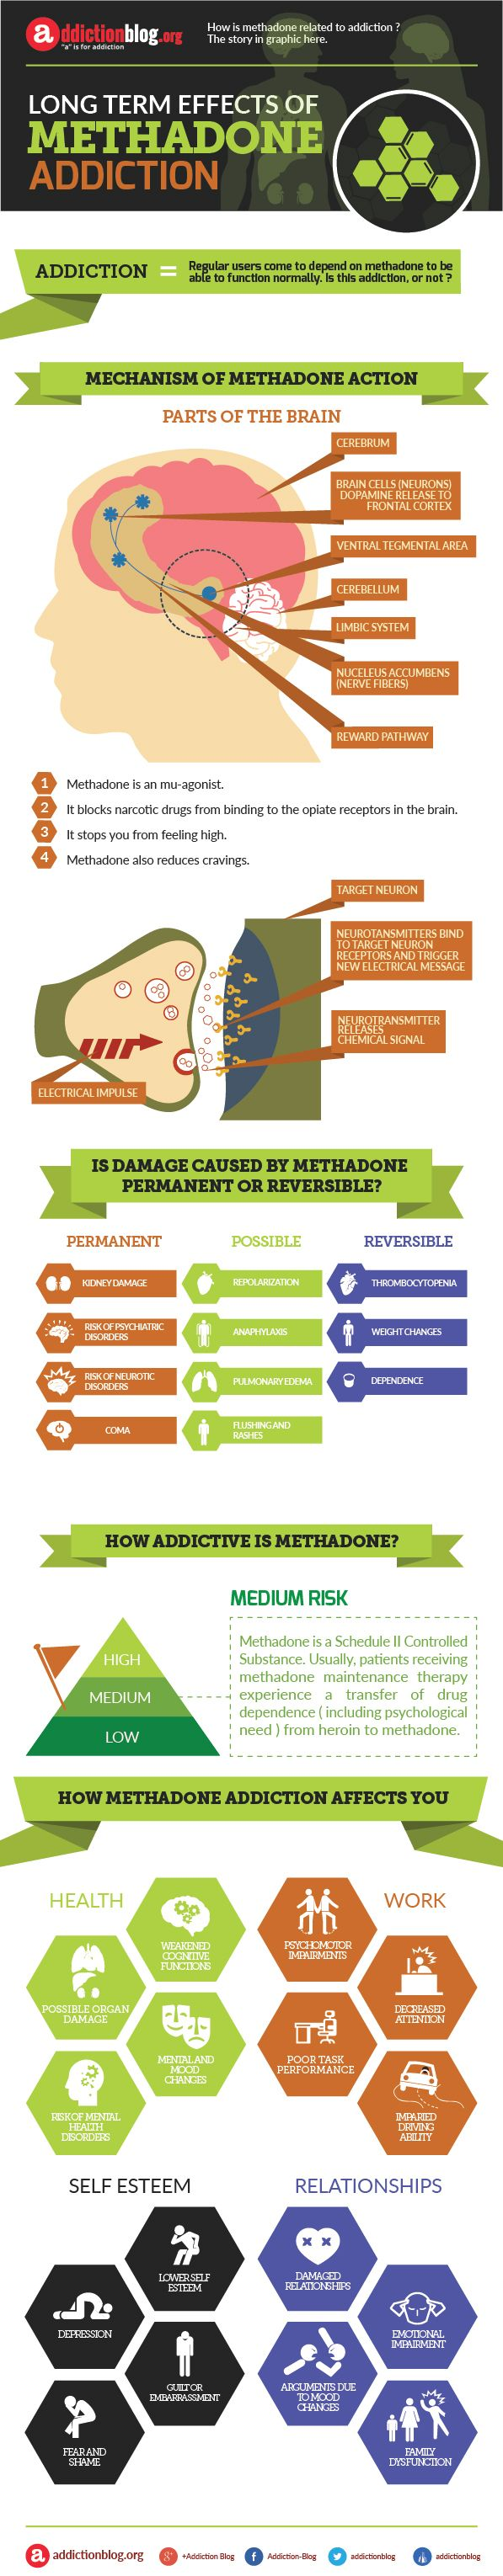 """Long term effects of methadone addiction (INFOGRAPHIC)    """"a"""" is for Addiction  addictionblog.org"""